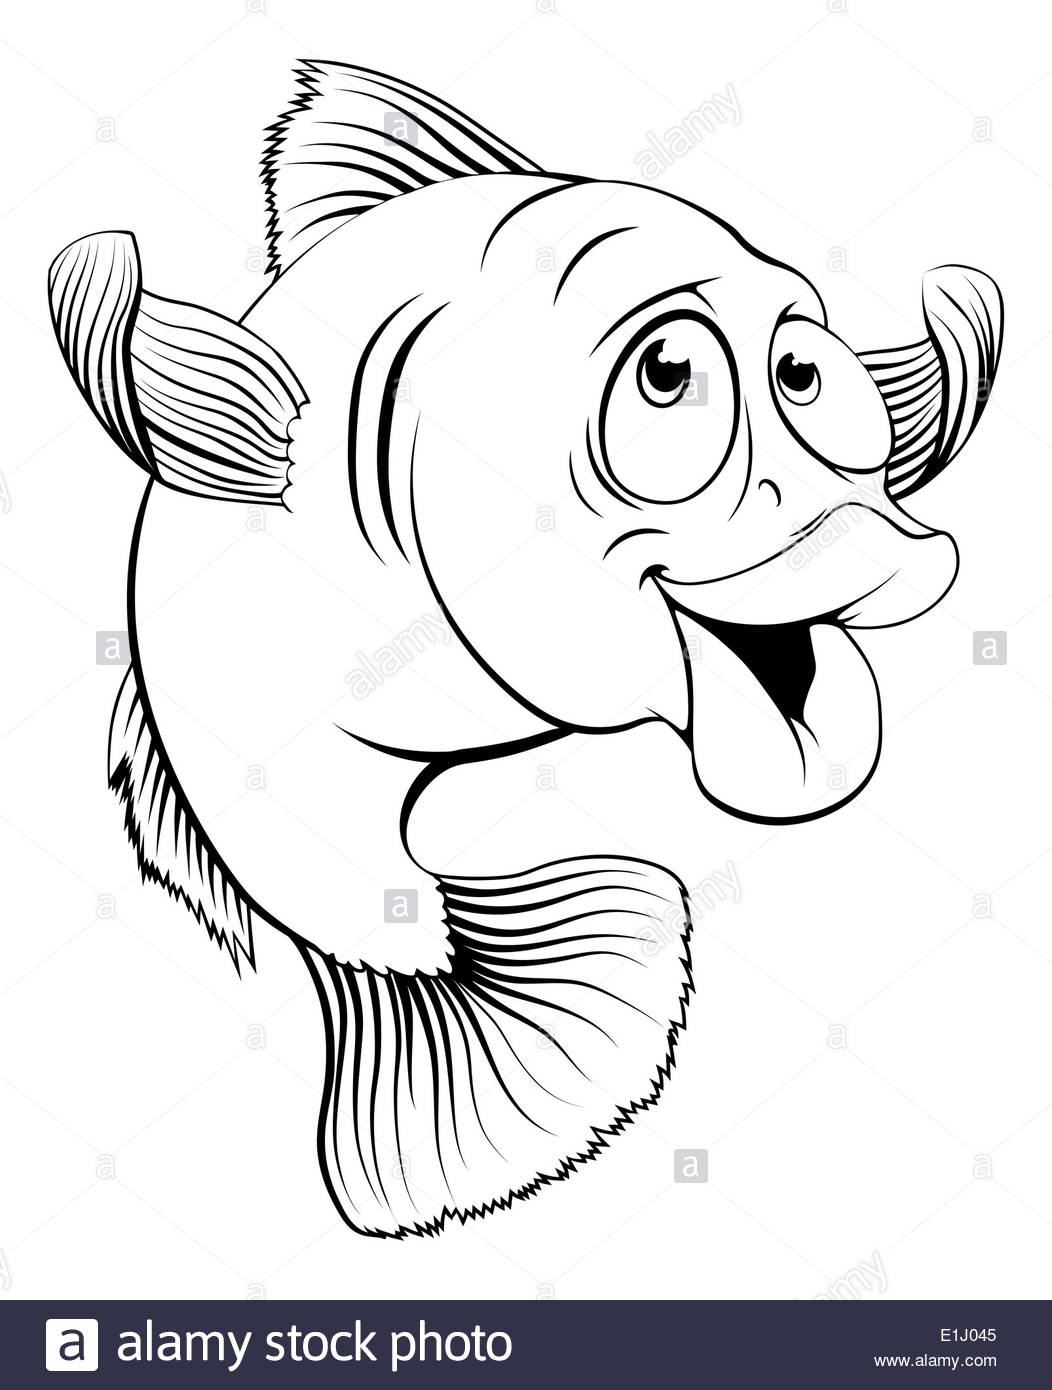 1052x1390 An illustration of a happy cute cartoon cod fish in black and